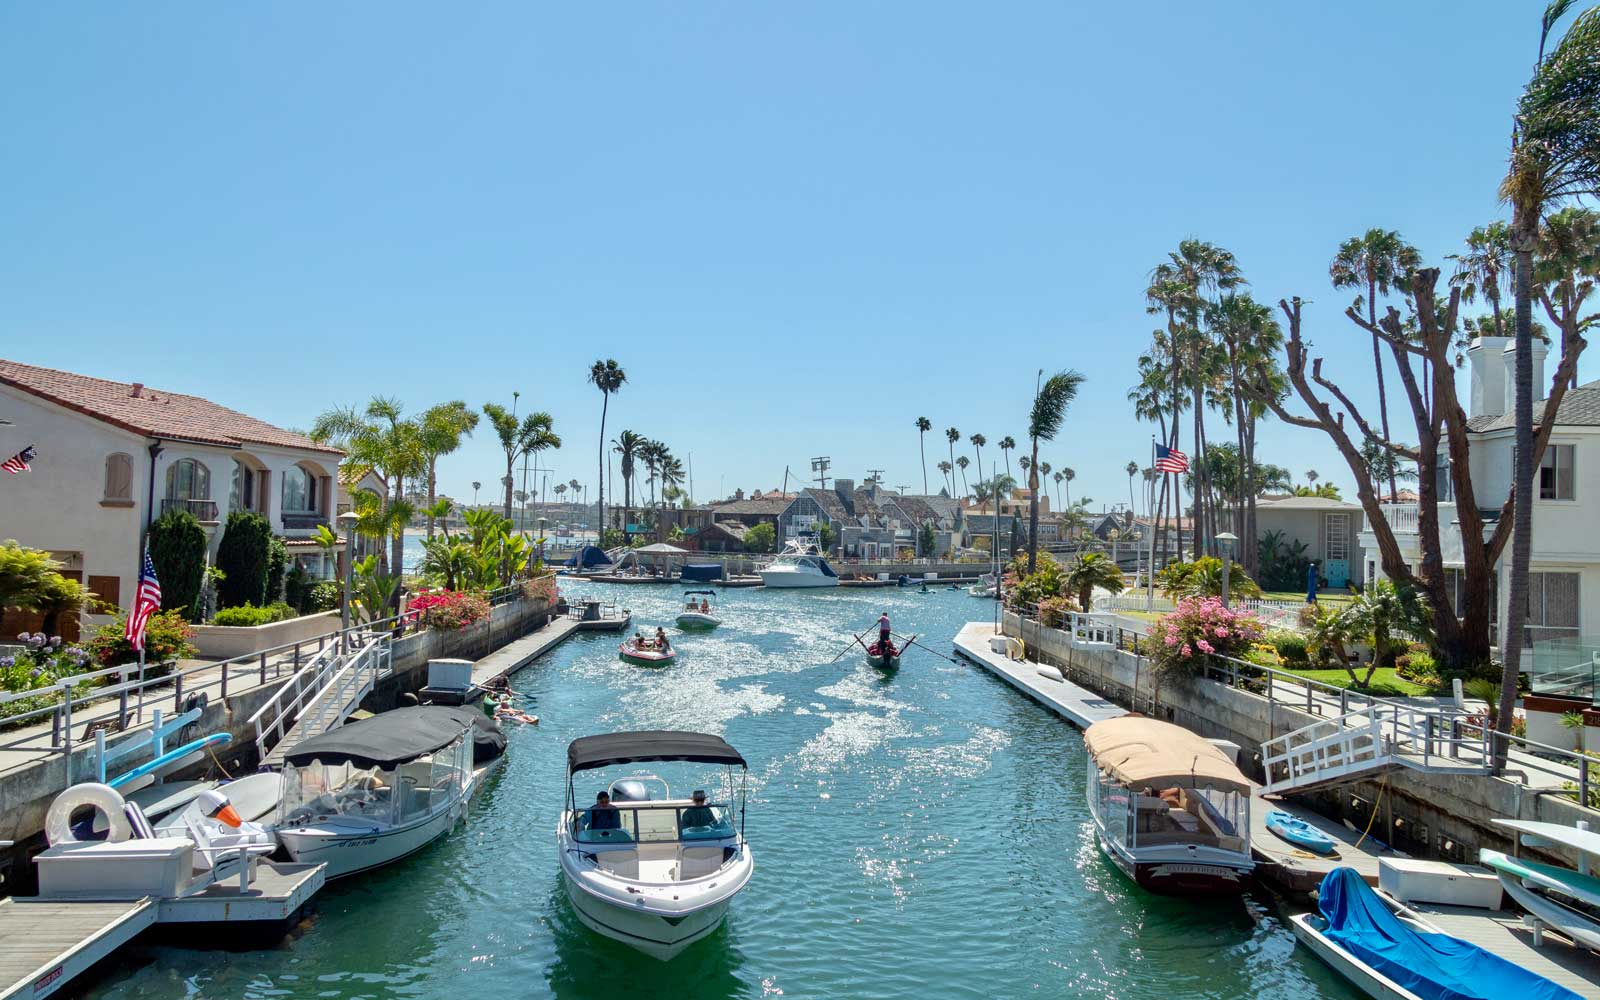 Naples Island canal in Long Beach, California